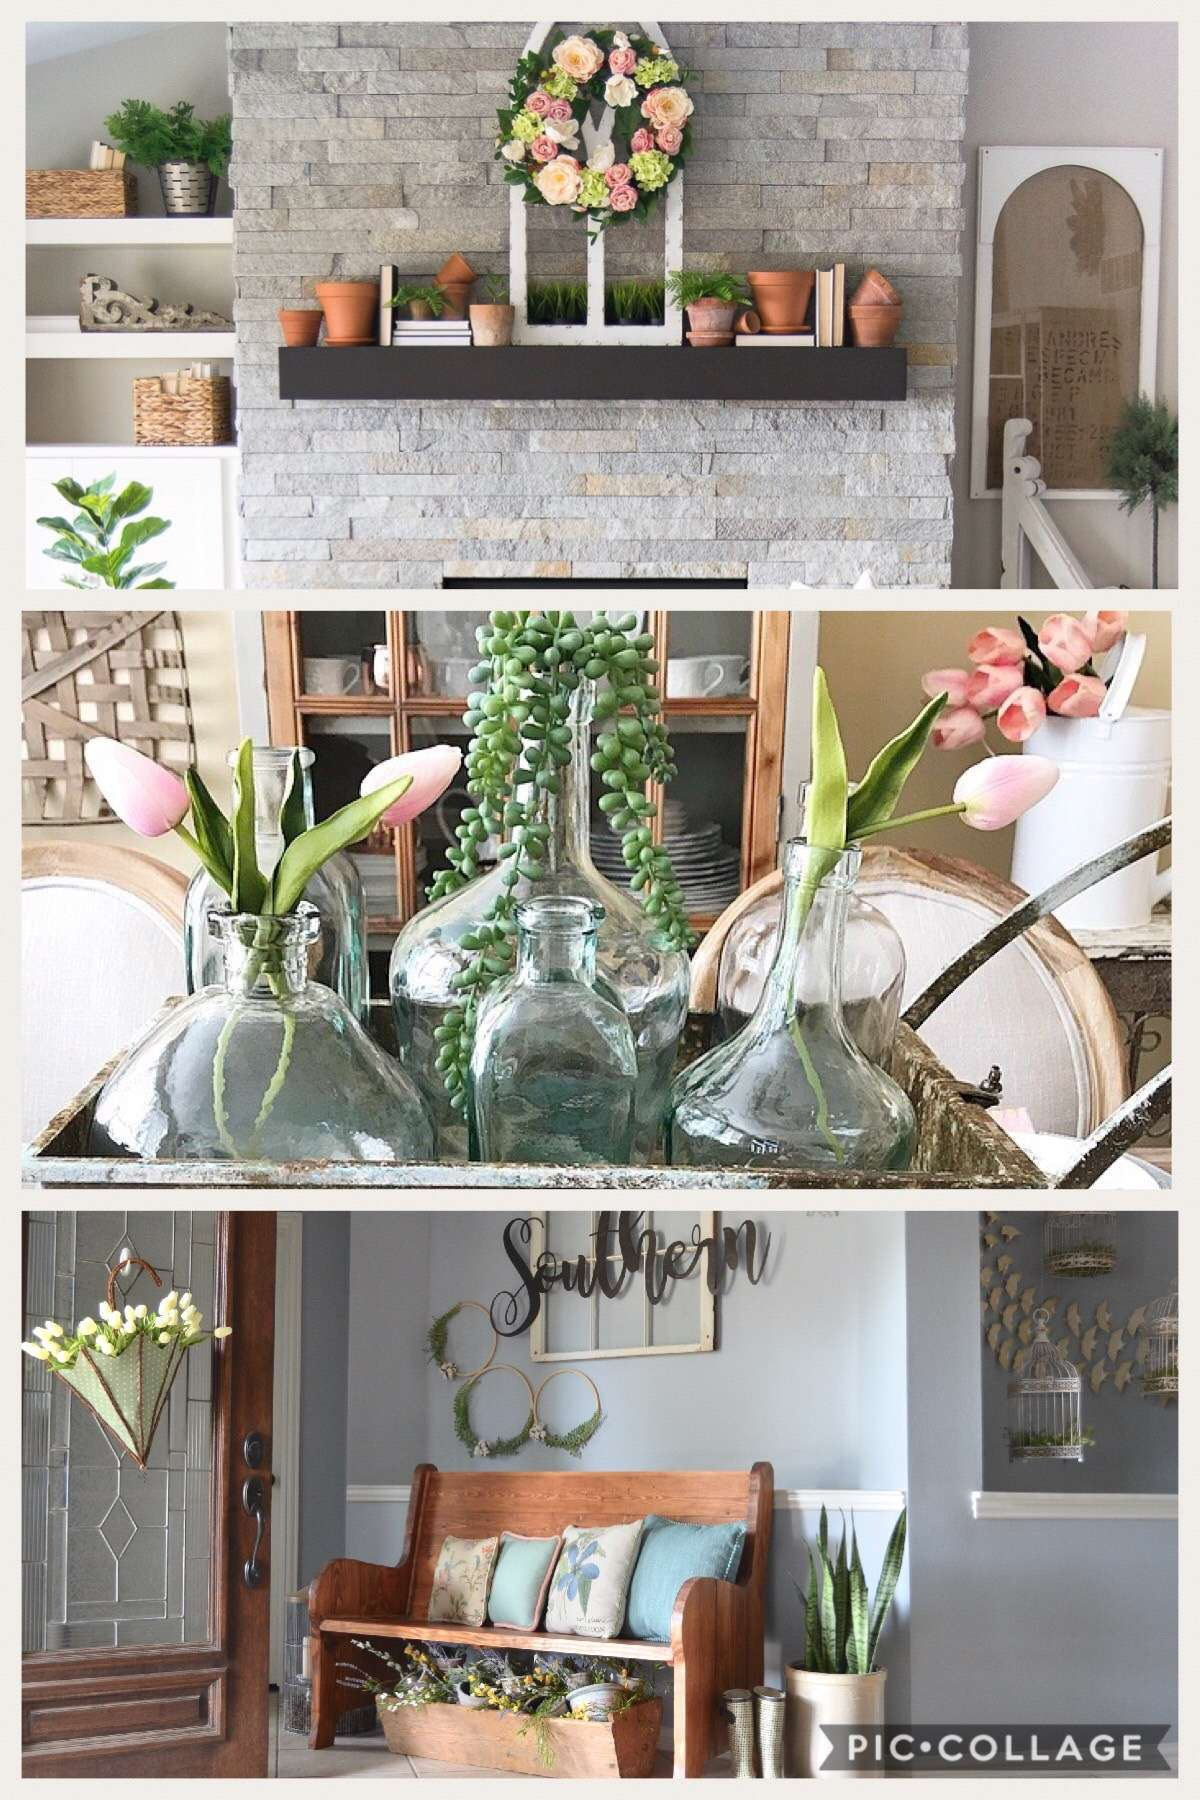 Are you looking for ideas for spring home decor? In my 2018 spring home tour I have some simple ways to incorporate natural elements, spring colors, and simple accents to get your home ready for spring. Join me on this spring home tour blog hop!